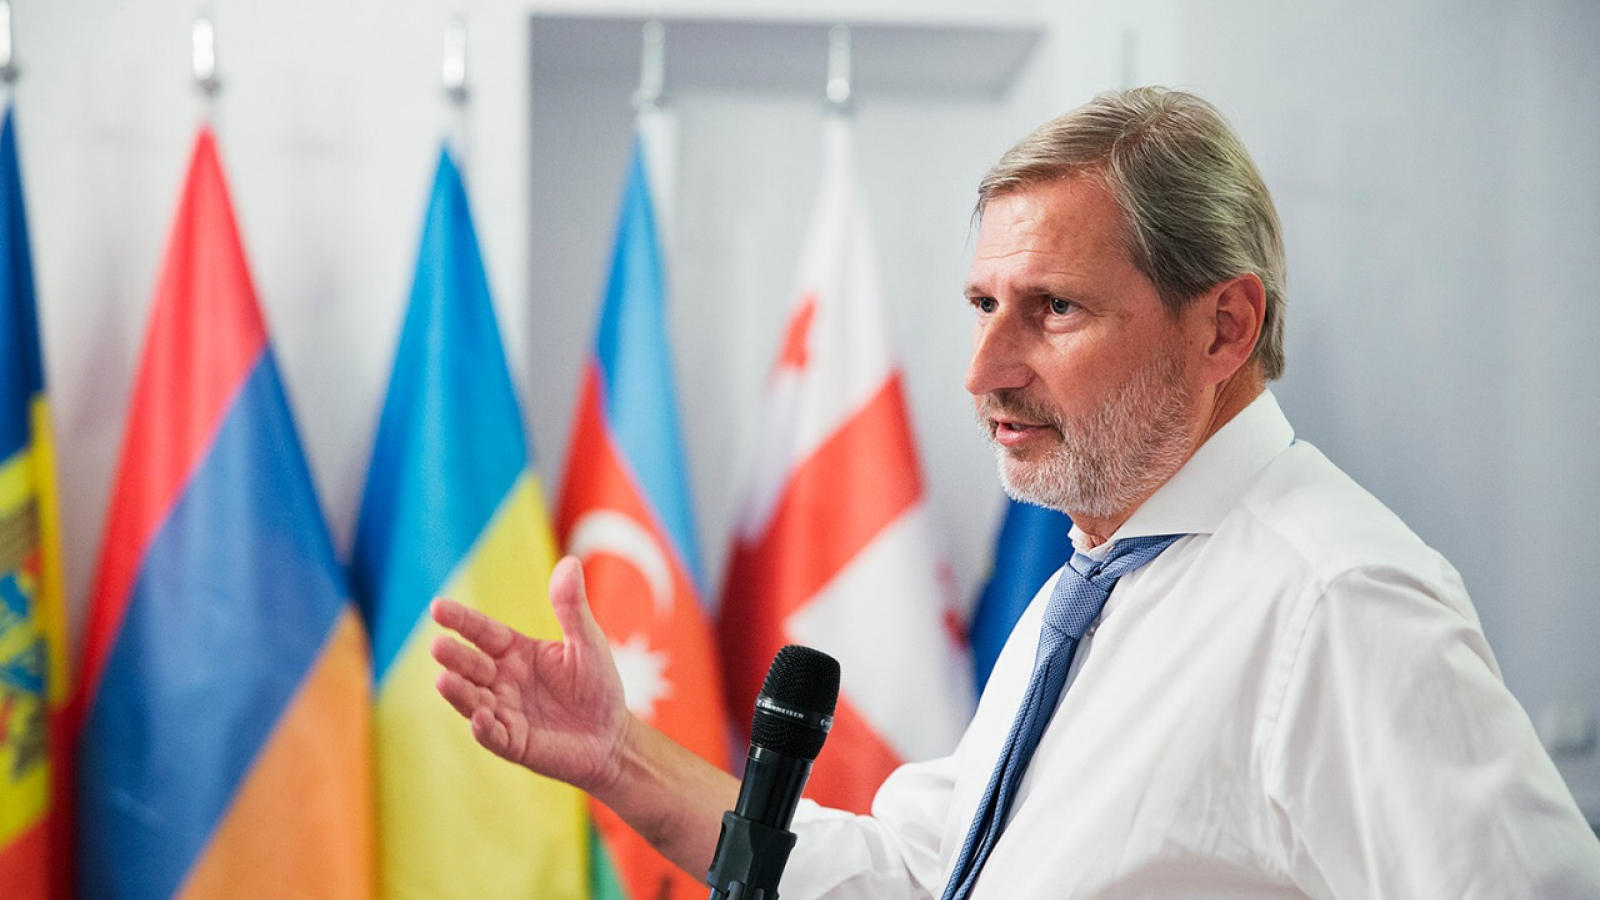 Johannes Hahn at the opening of the Eastern Partnership European School in Tbilisi, Georgia on 4 September 2018